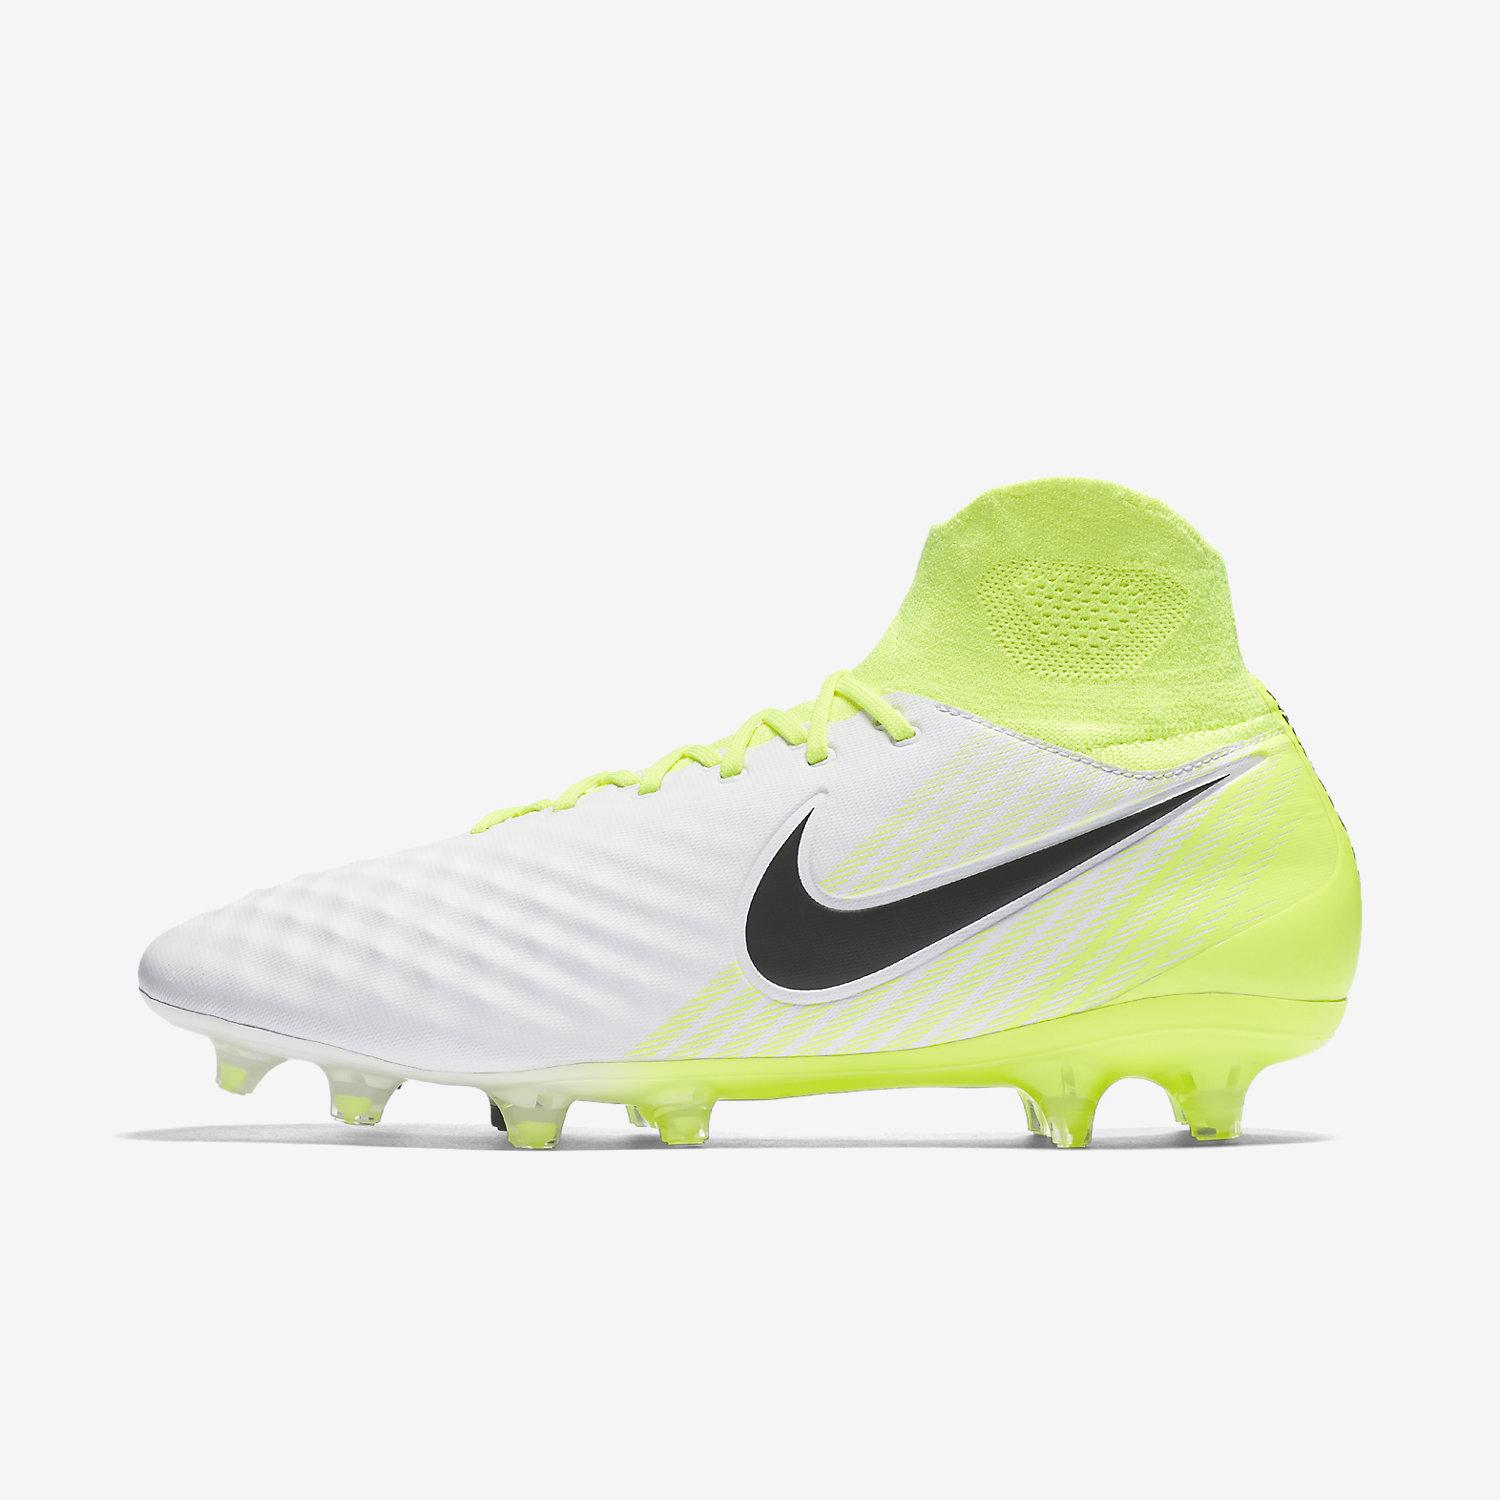 Nike Chaussures De Football Magista Orden Ii Fg